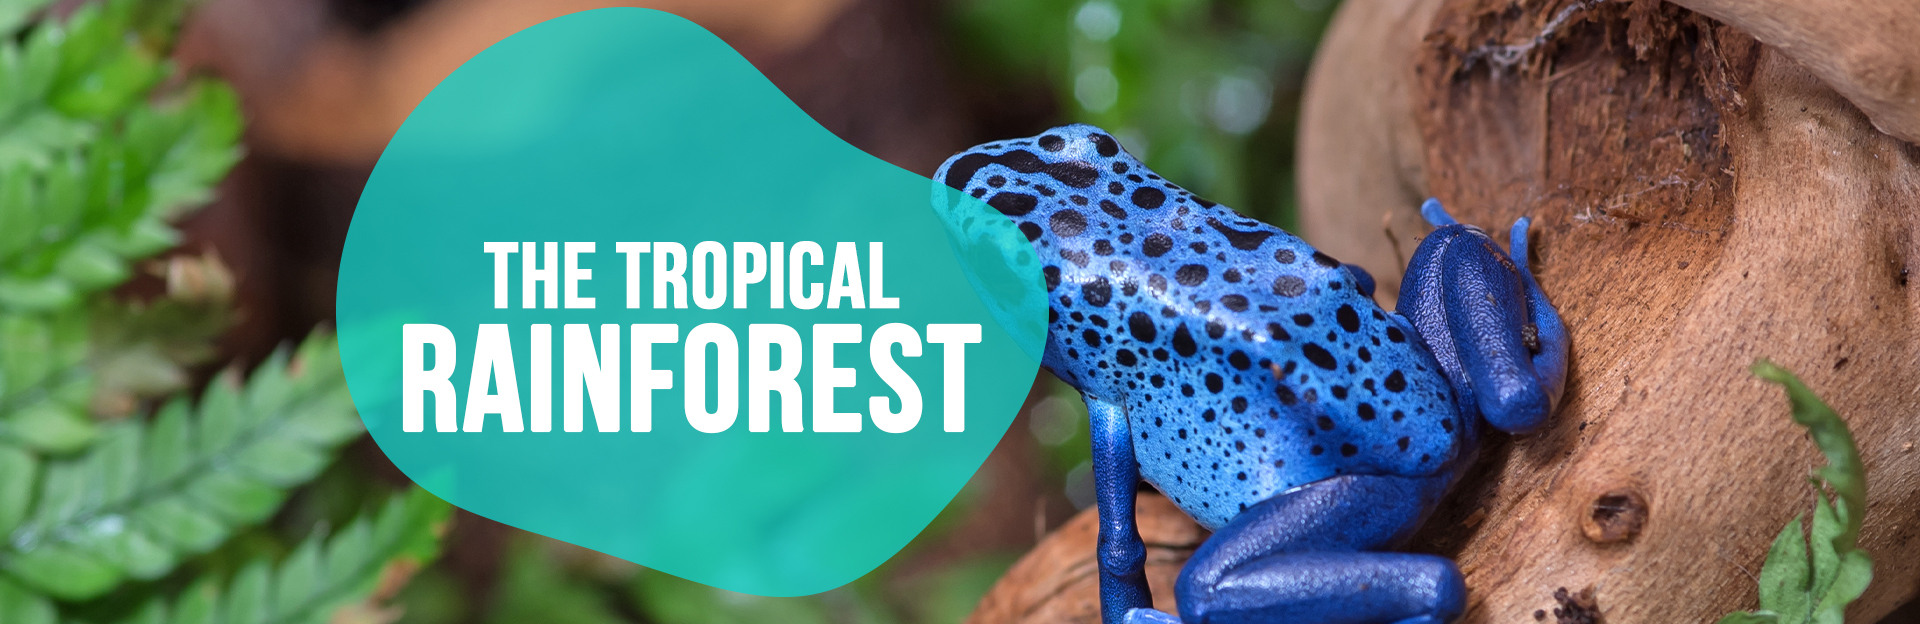 Header image for Tropical Rainforest page